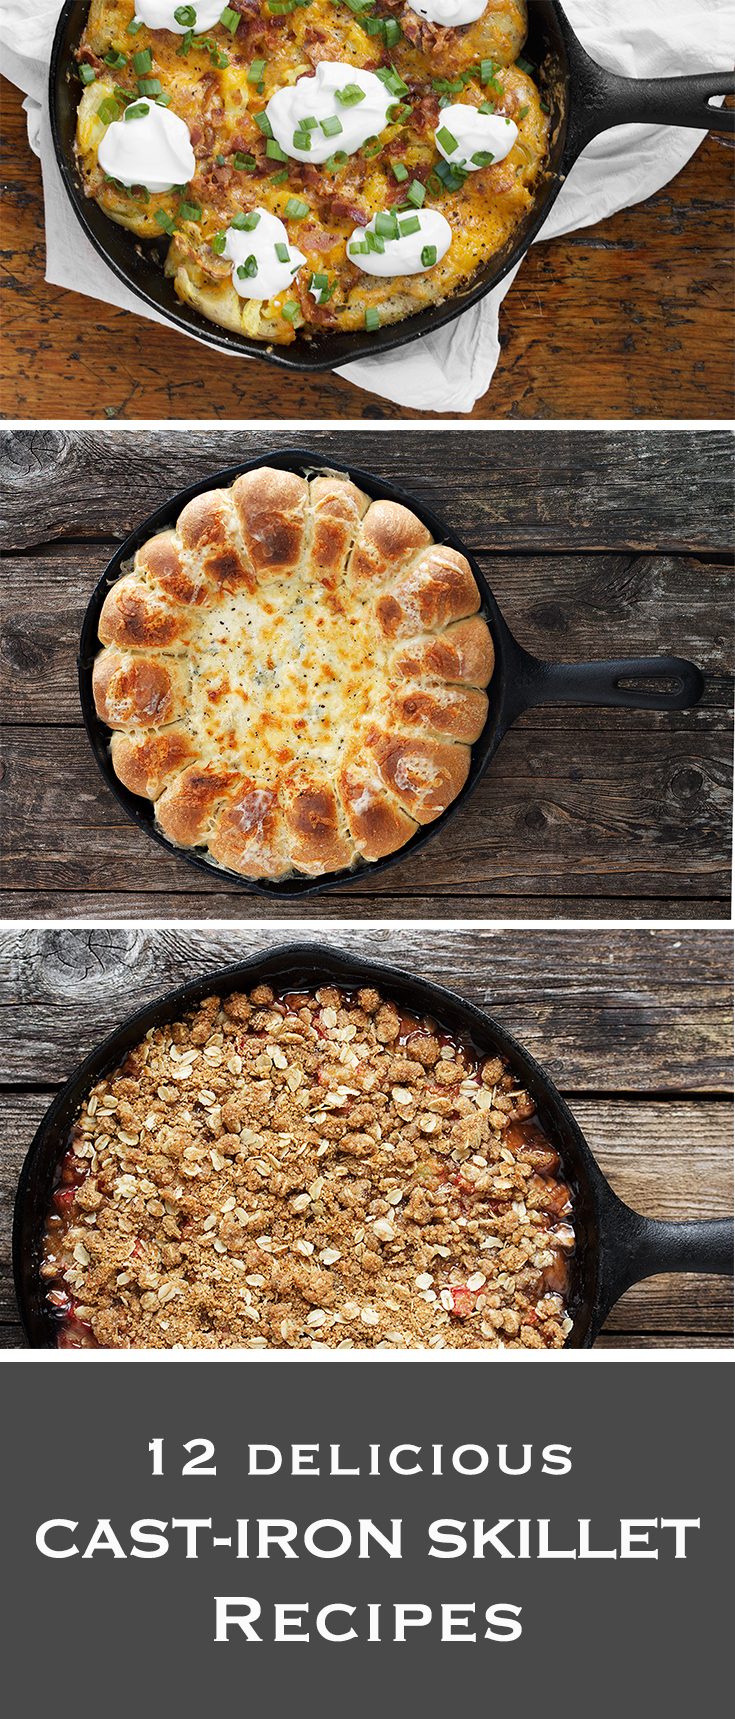 12 Delicious Cast-Iron Skillet Recipes